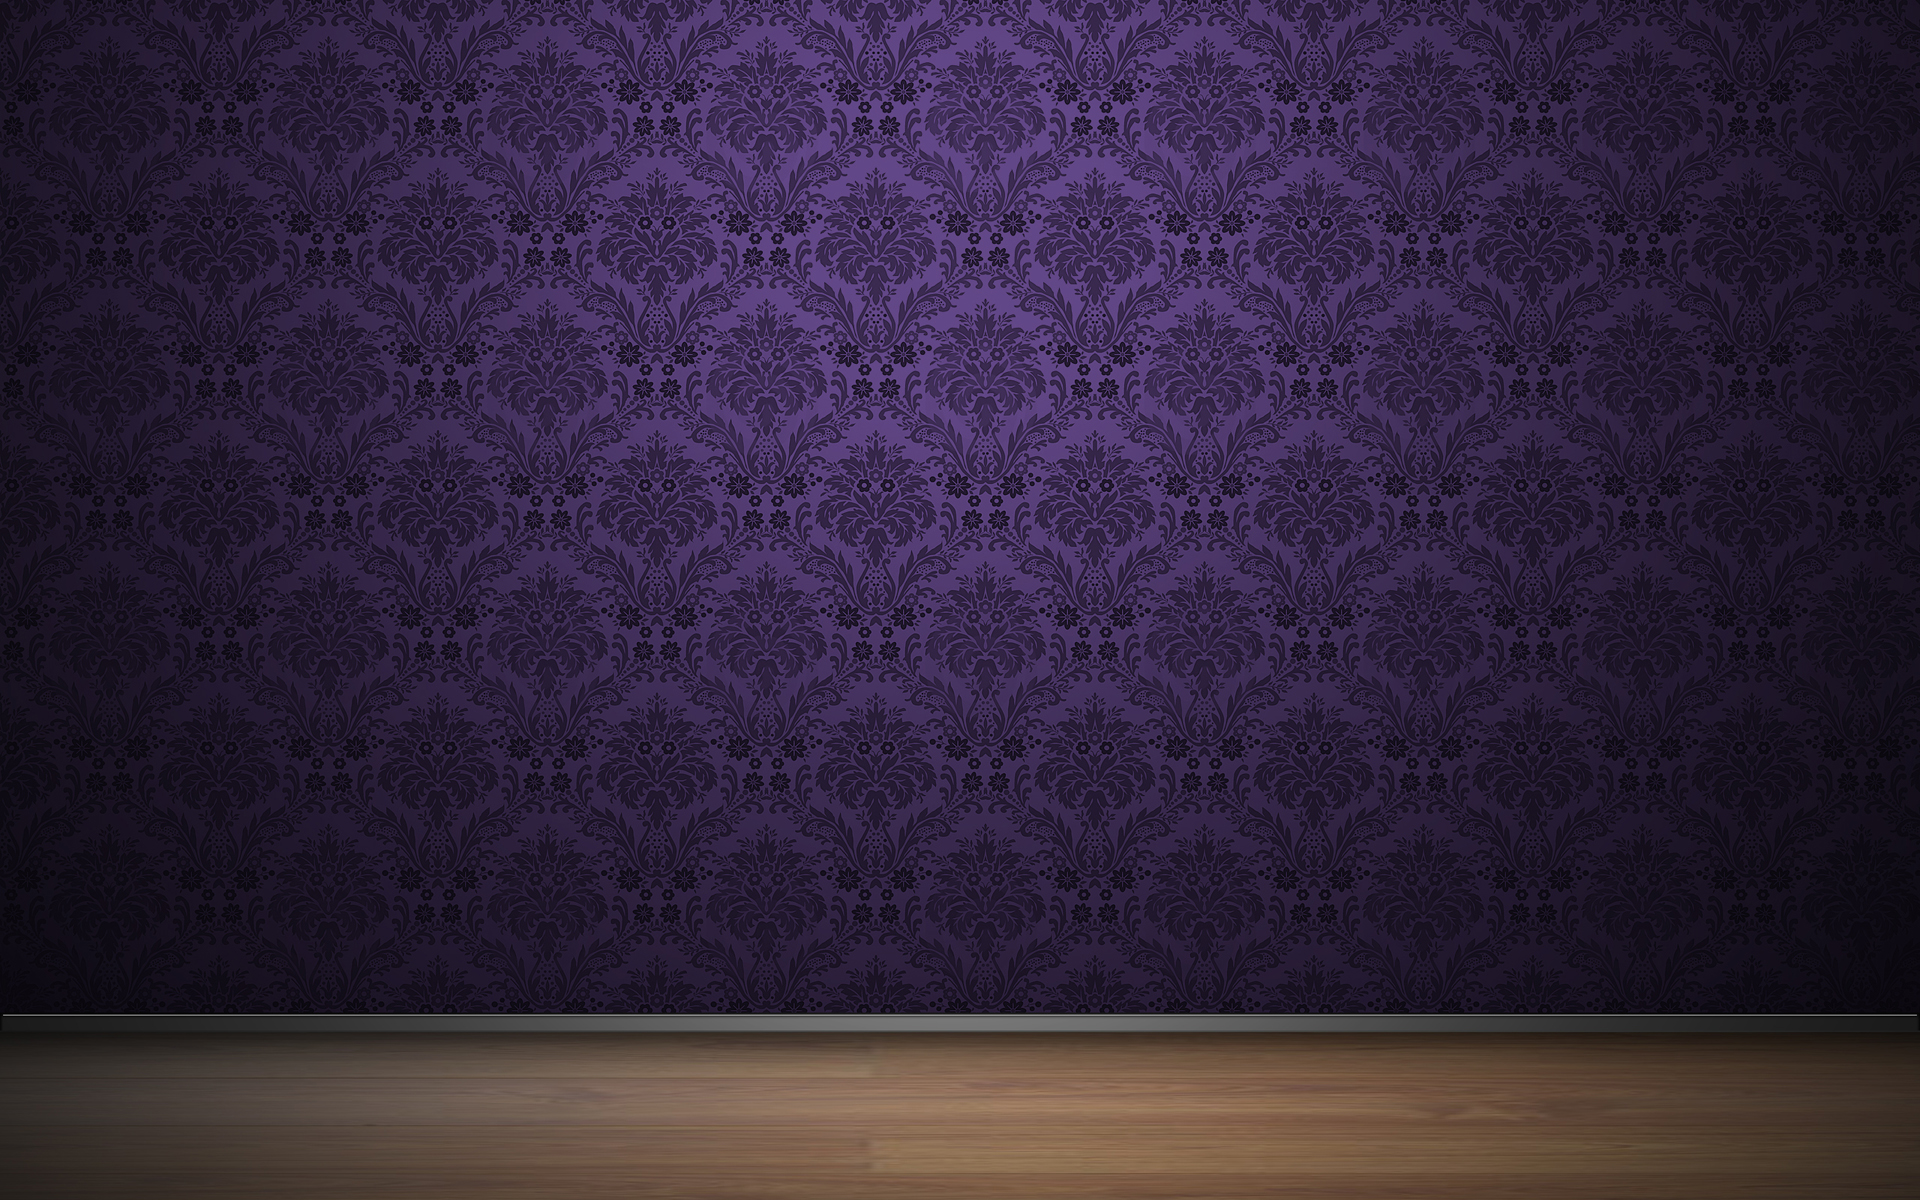 Purple vintage pattern wallpaper   42466 1920x1200